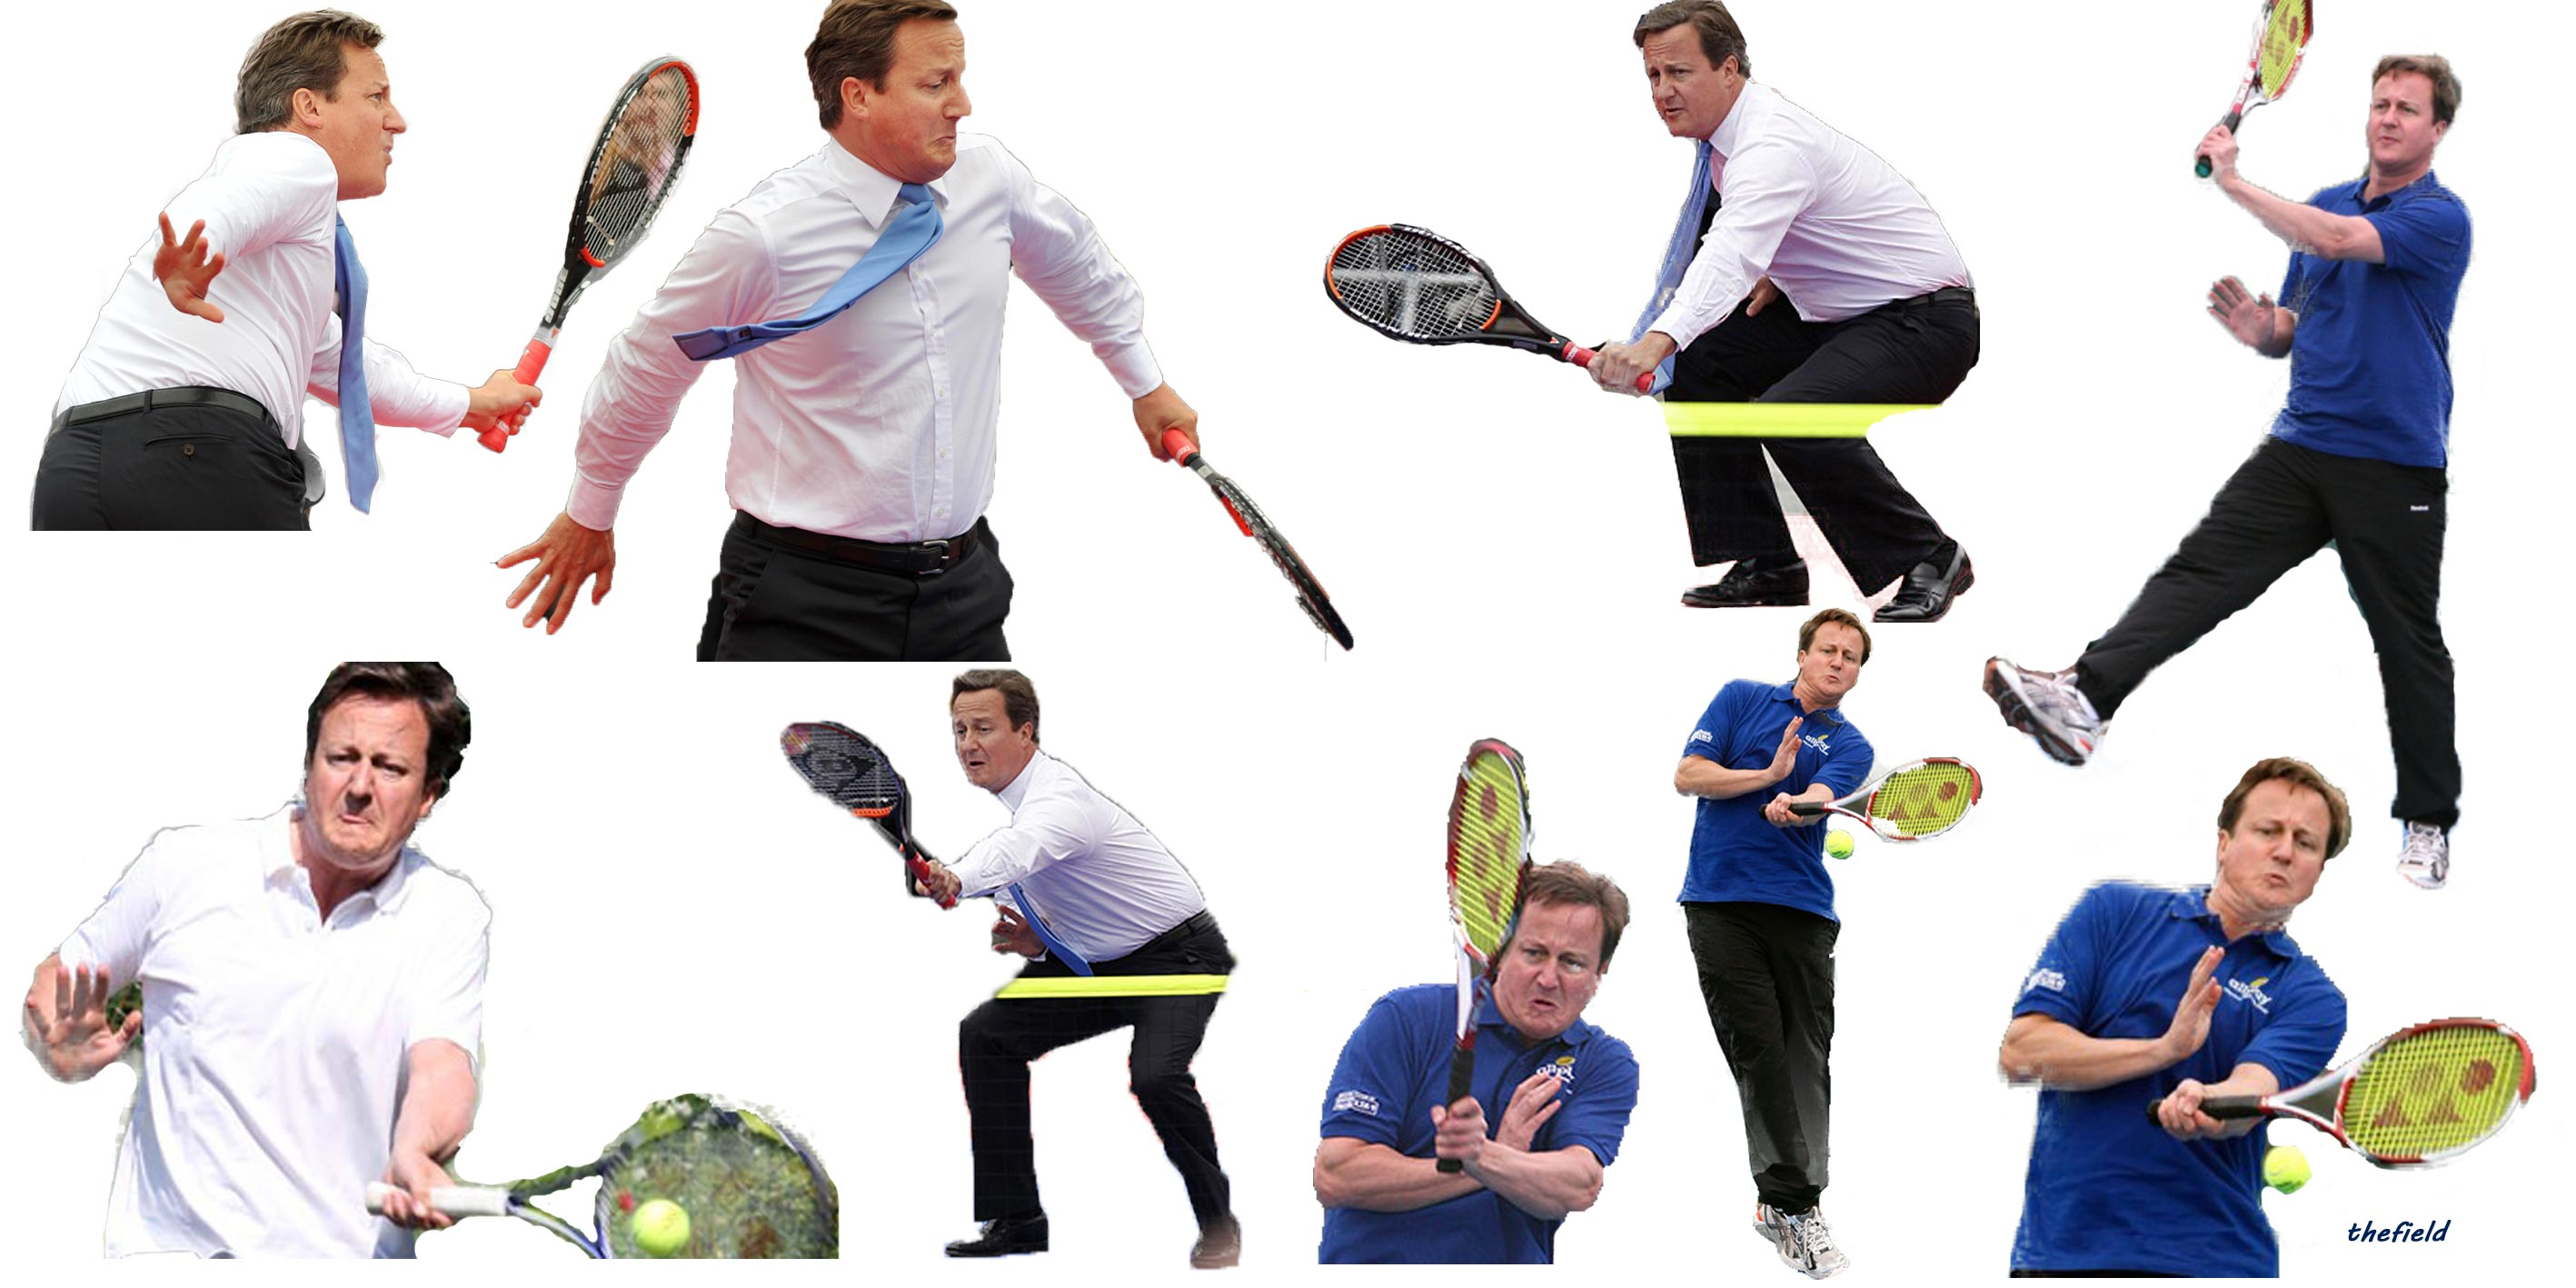 i want to learn how to play tennis